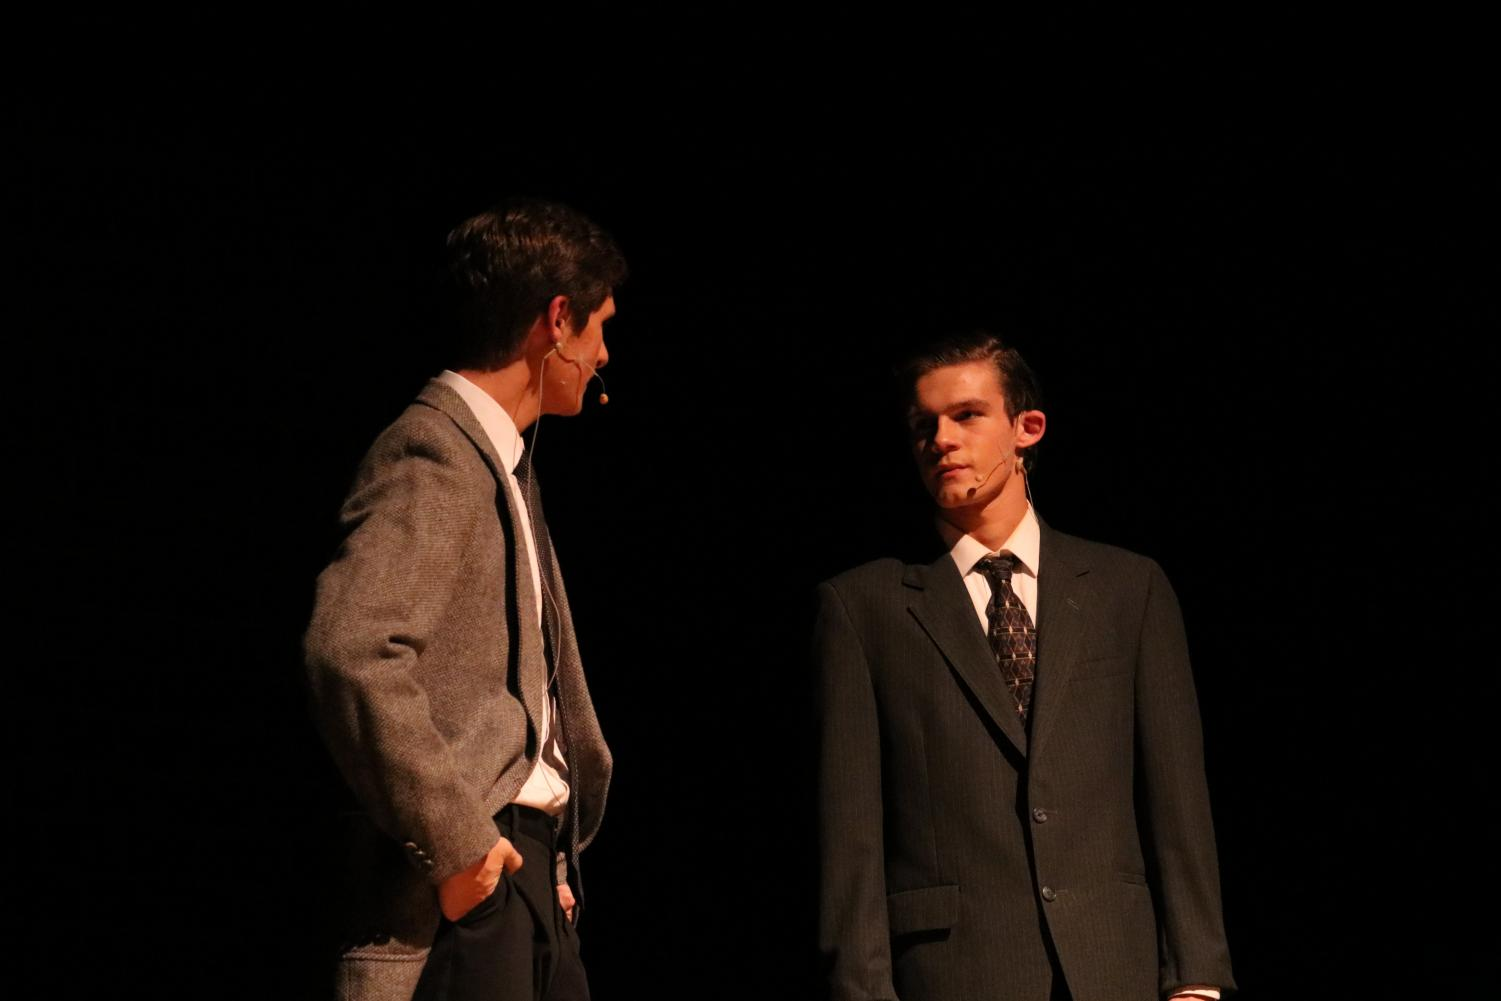 Seniors Zach McKay and Bradley Dennis have a heated conversation towards the end of the show. Both boys played associates of the U.S. Radium Corporation.